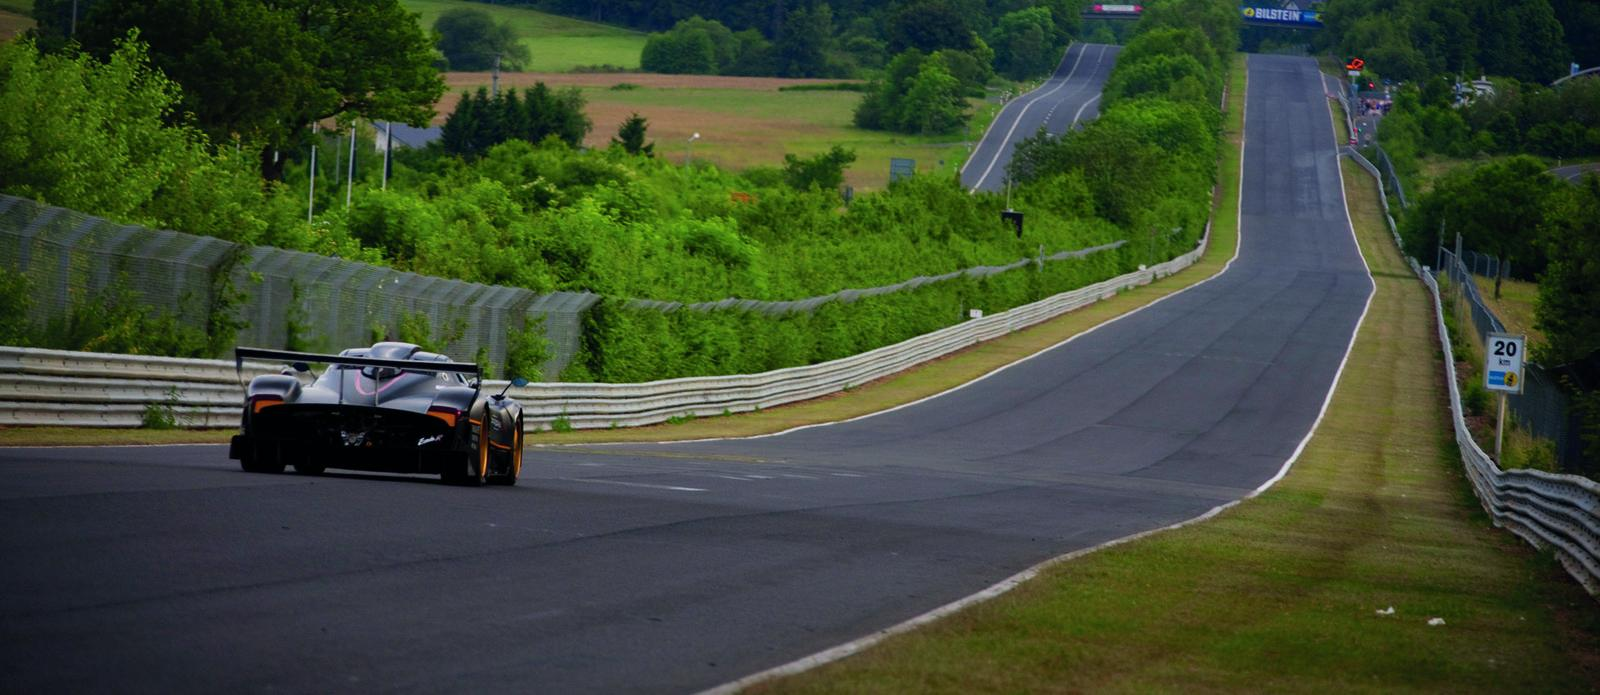 pagani-zonda-r-sets-new-circuit-record-at-nurburgring-nordschleife-12